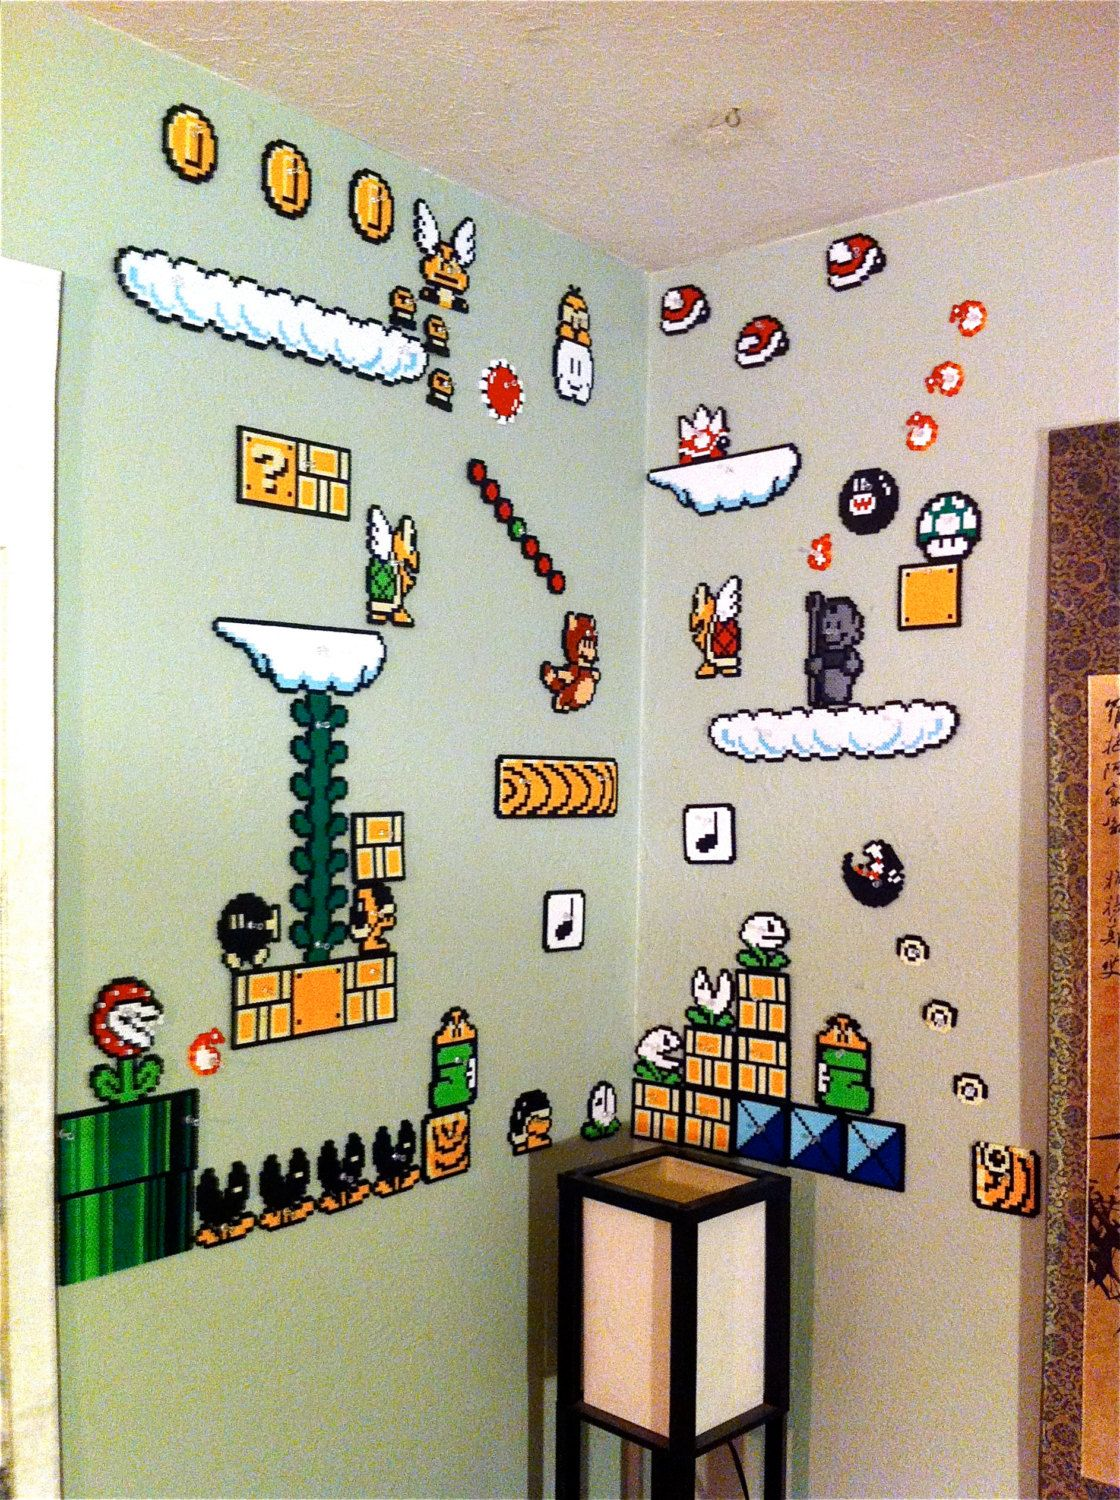 awesome super mario perler fridge magnets planned out super mario brothers 3 world 5 wall scene perler beads by echobasecrafts